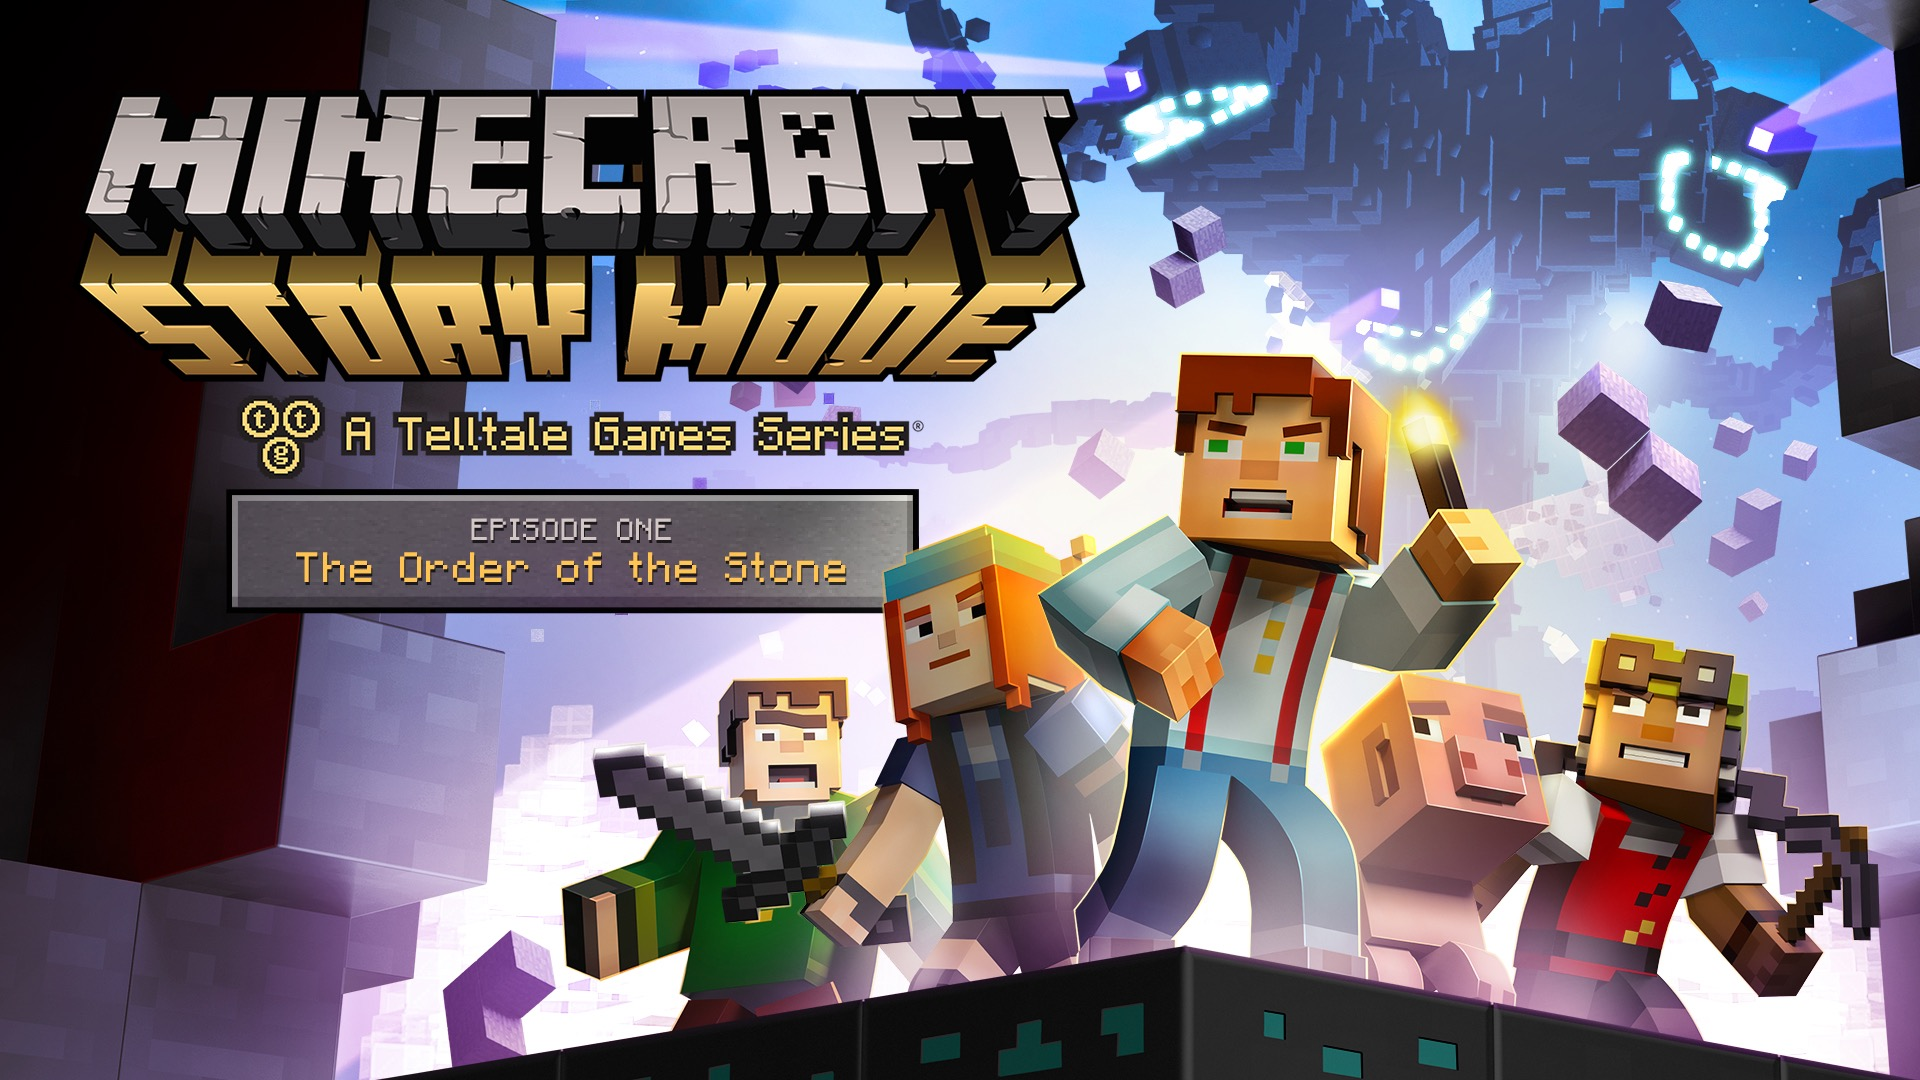 Minecraft story mode hd wallpapers free download - Minecraft story mode wallpaper ...